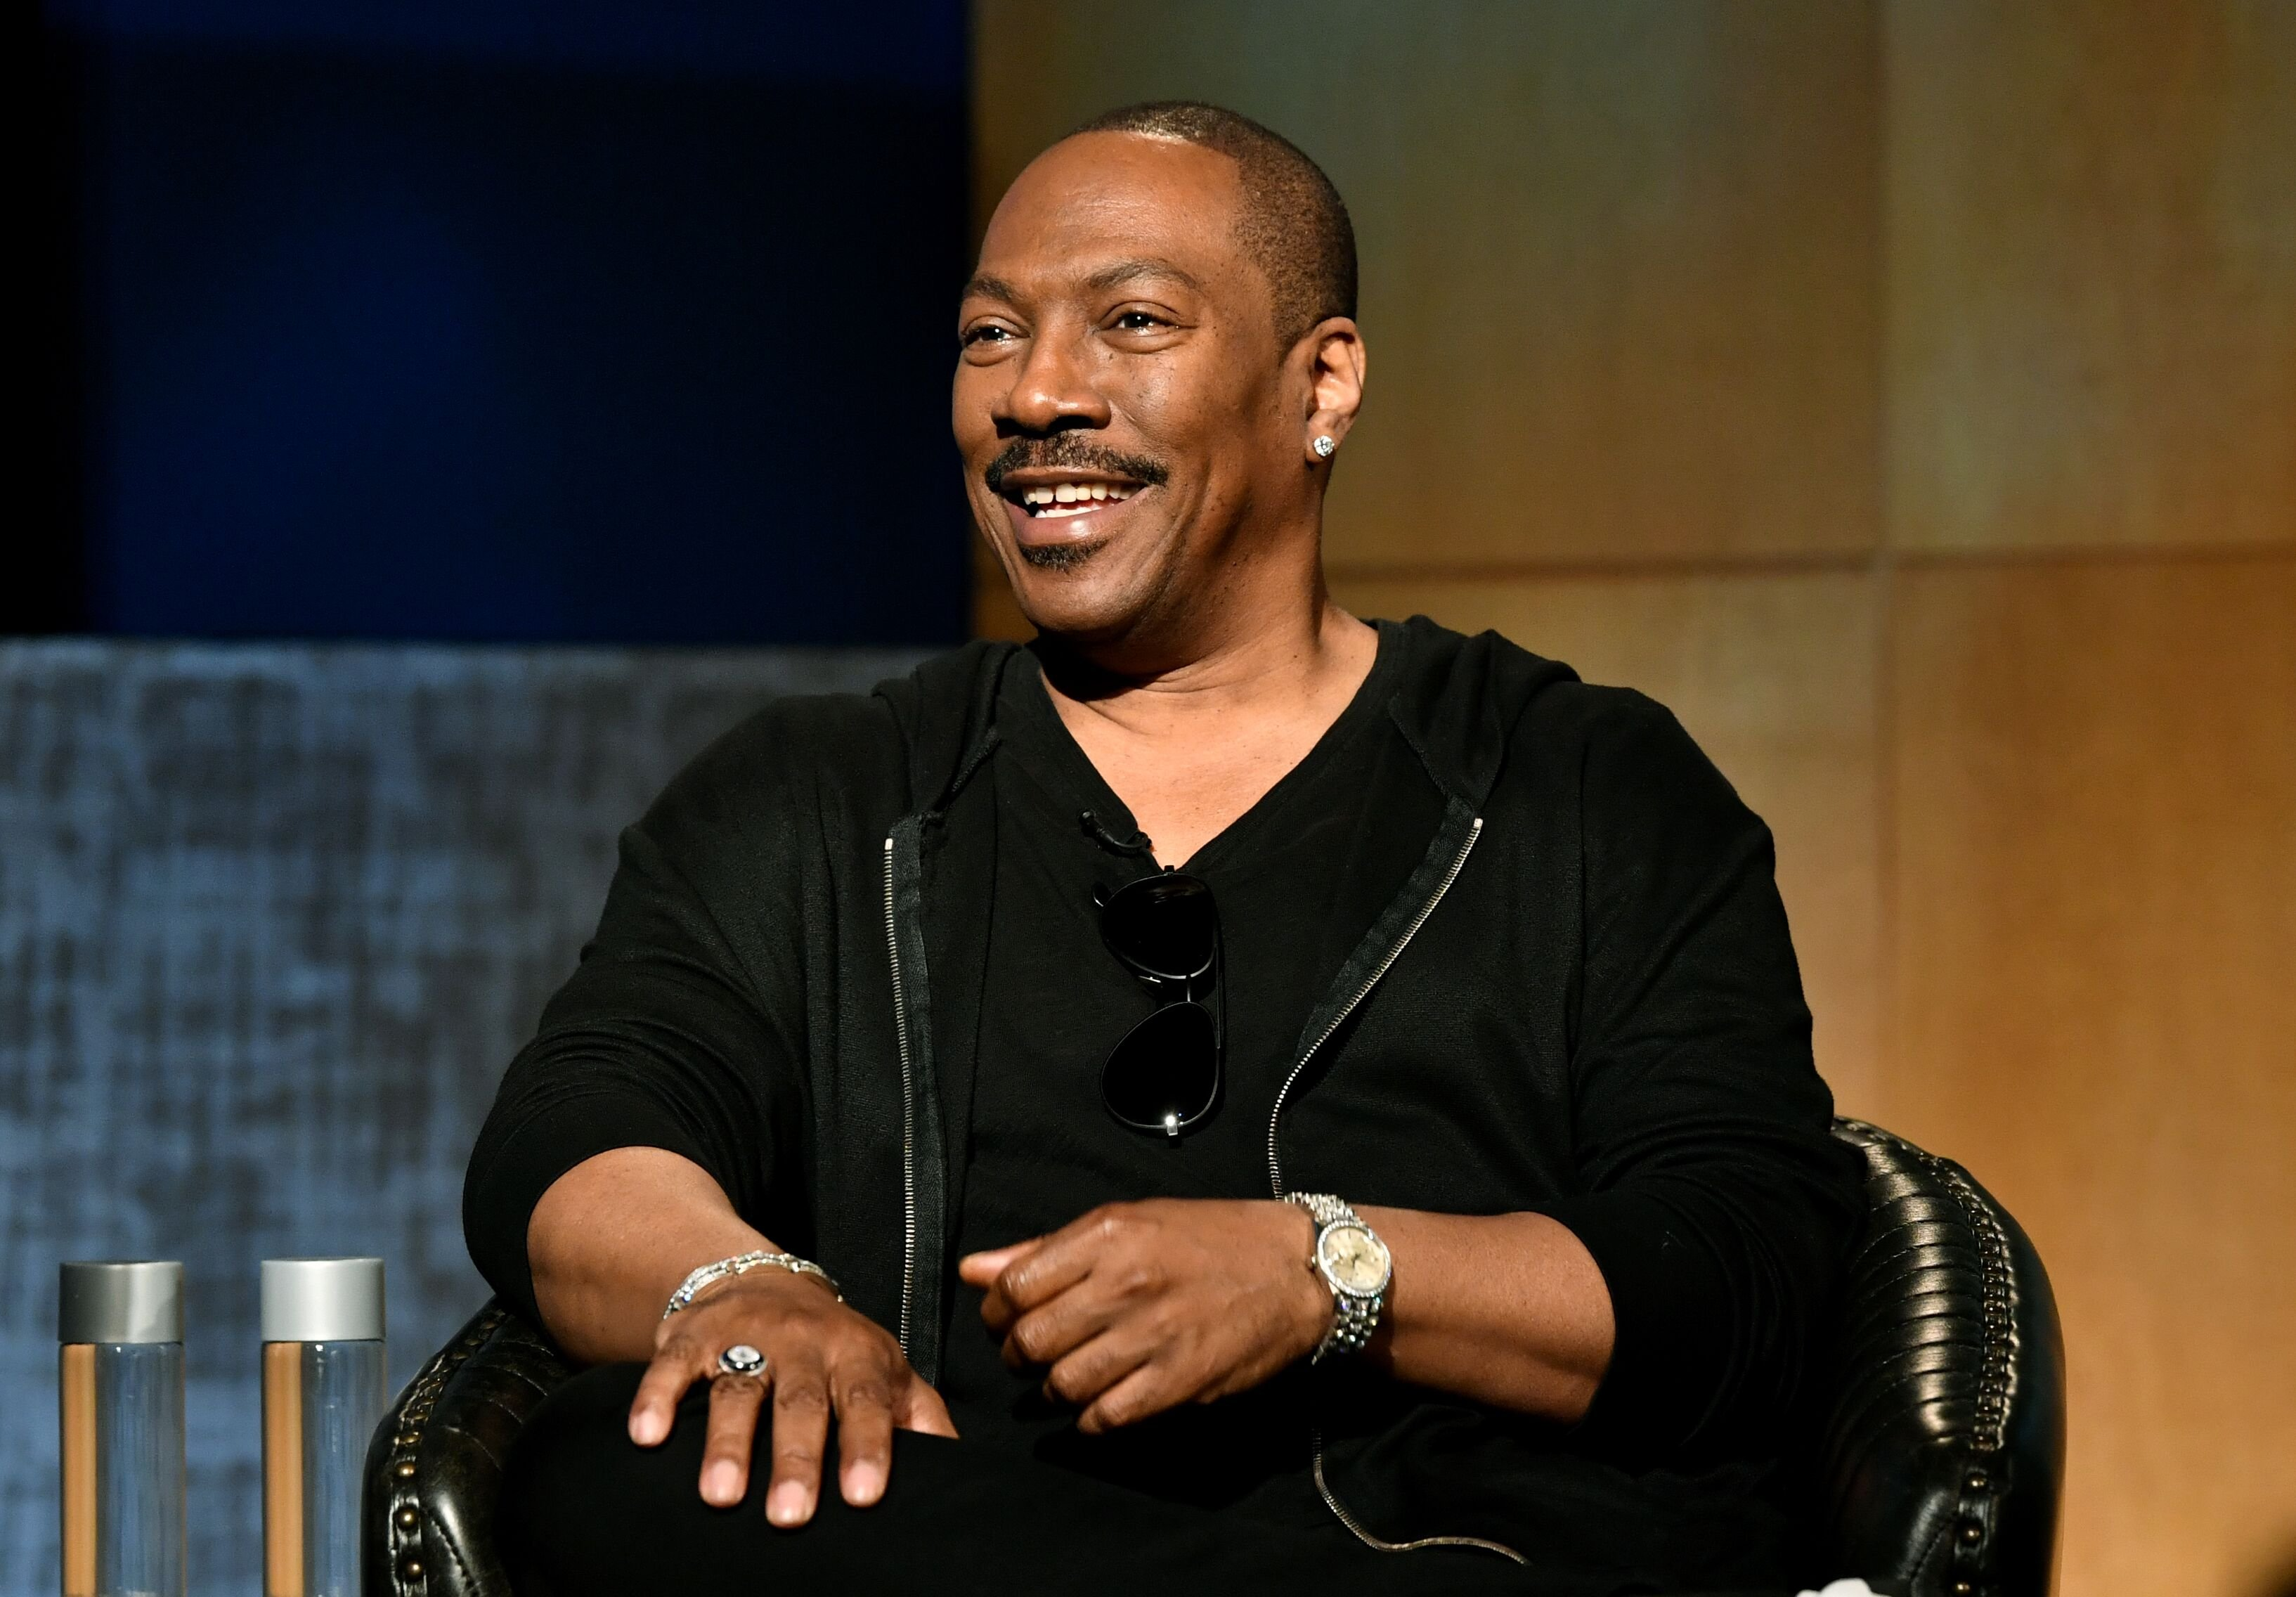 Actor and comedian Eddie Murphy/ Source: Getty Images